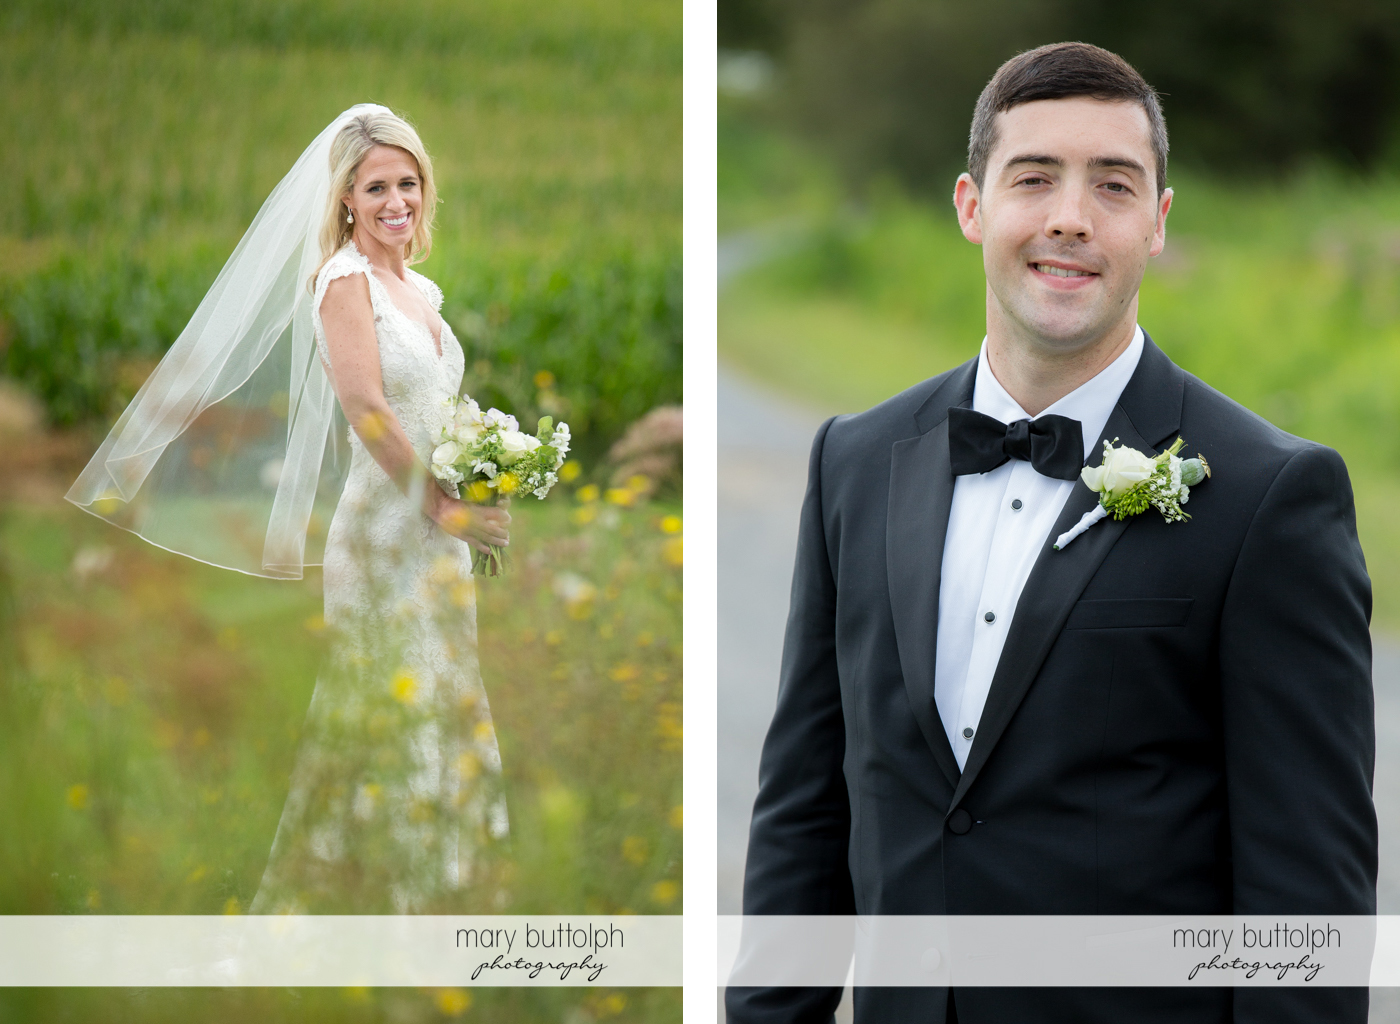 Solo shots of the couple in the garden at Skaneateles Country Club Wedding